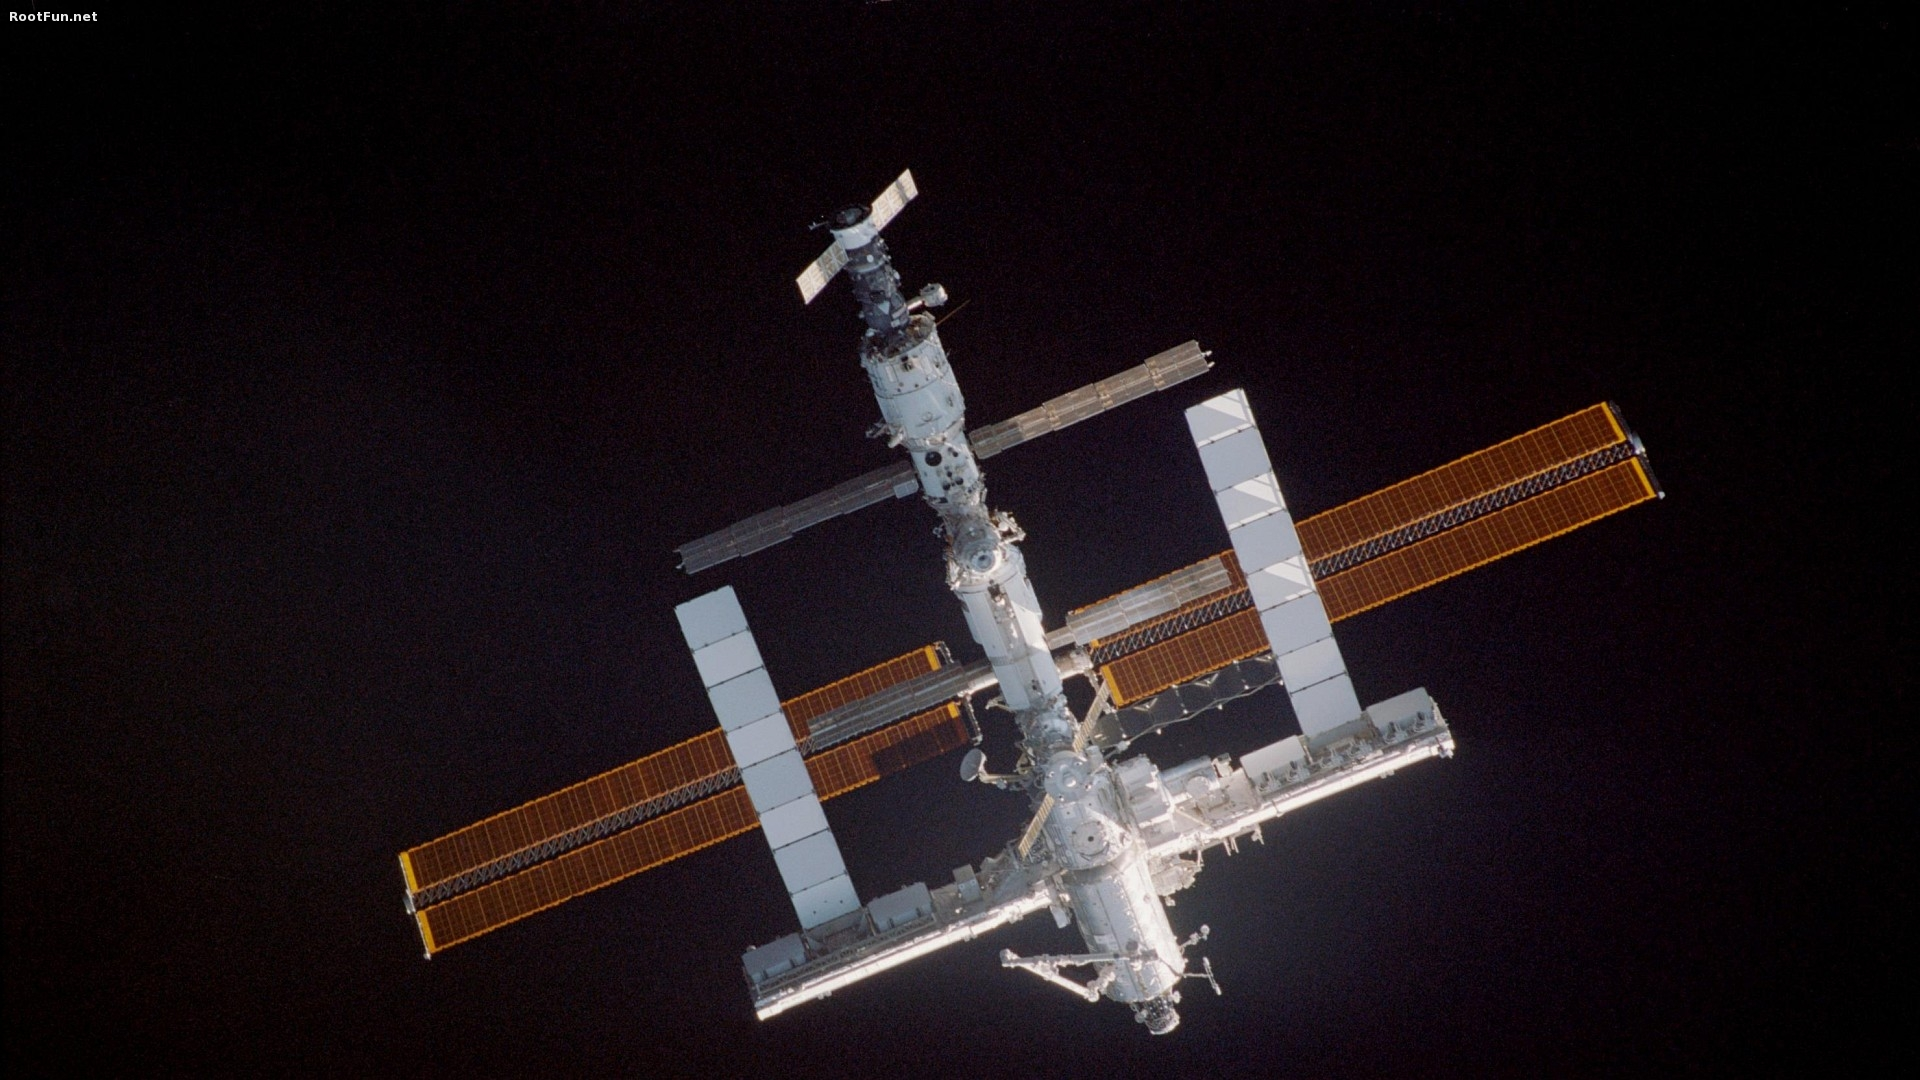 space station 5 - photo #34